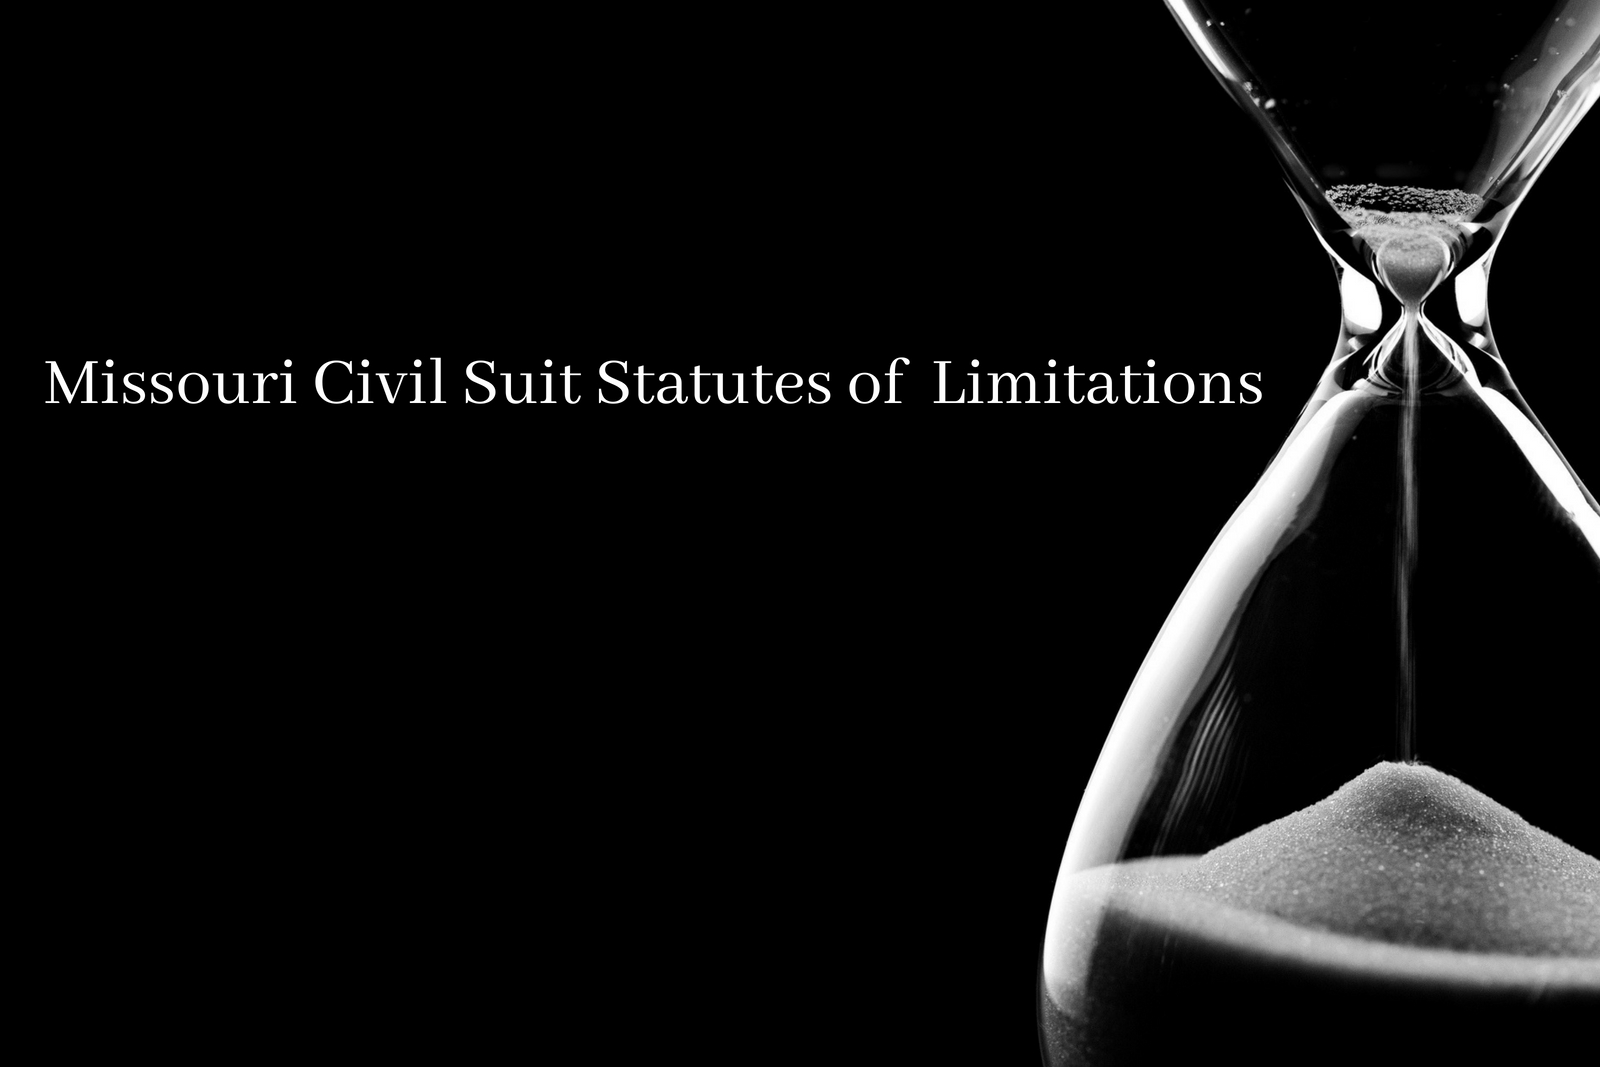 Missouri Civil Suit Statutes of Limitations